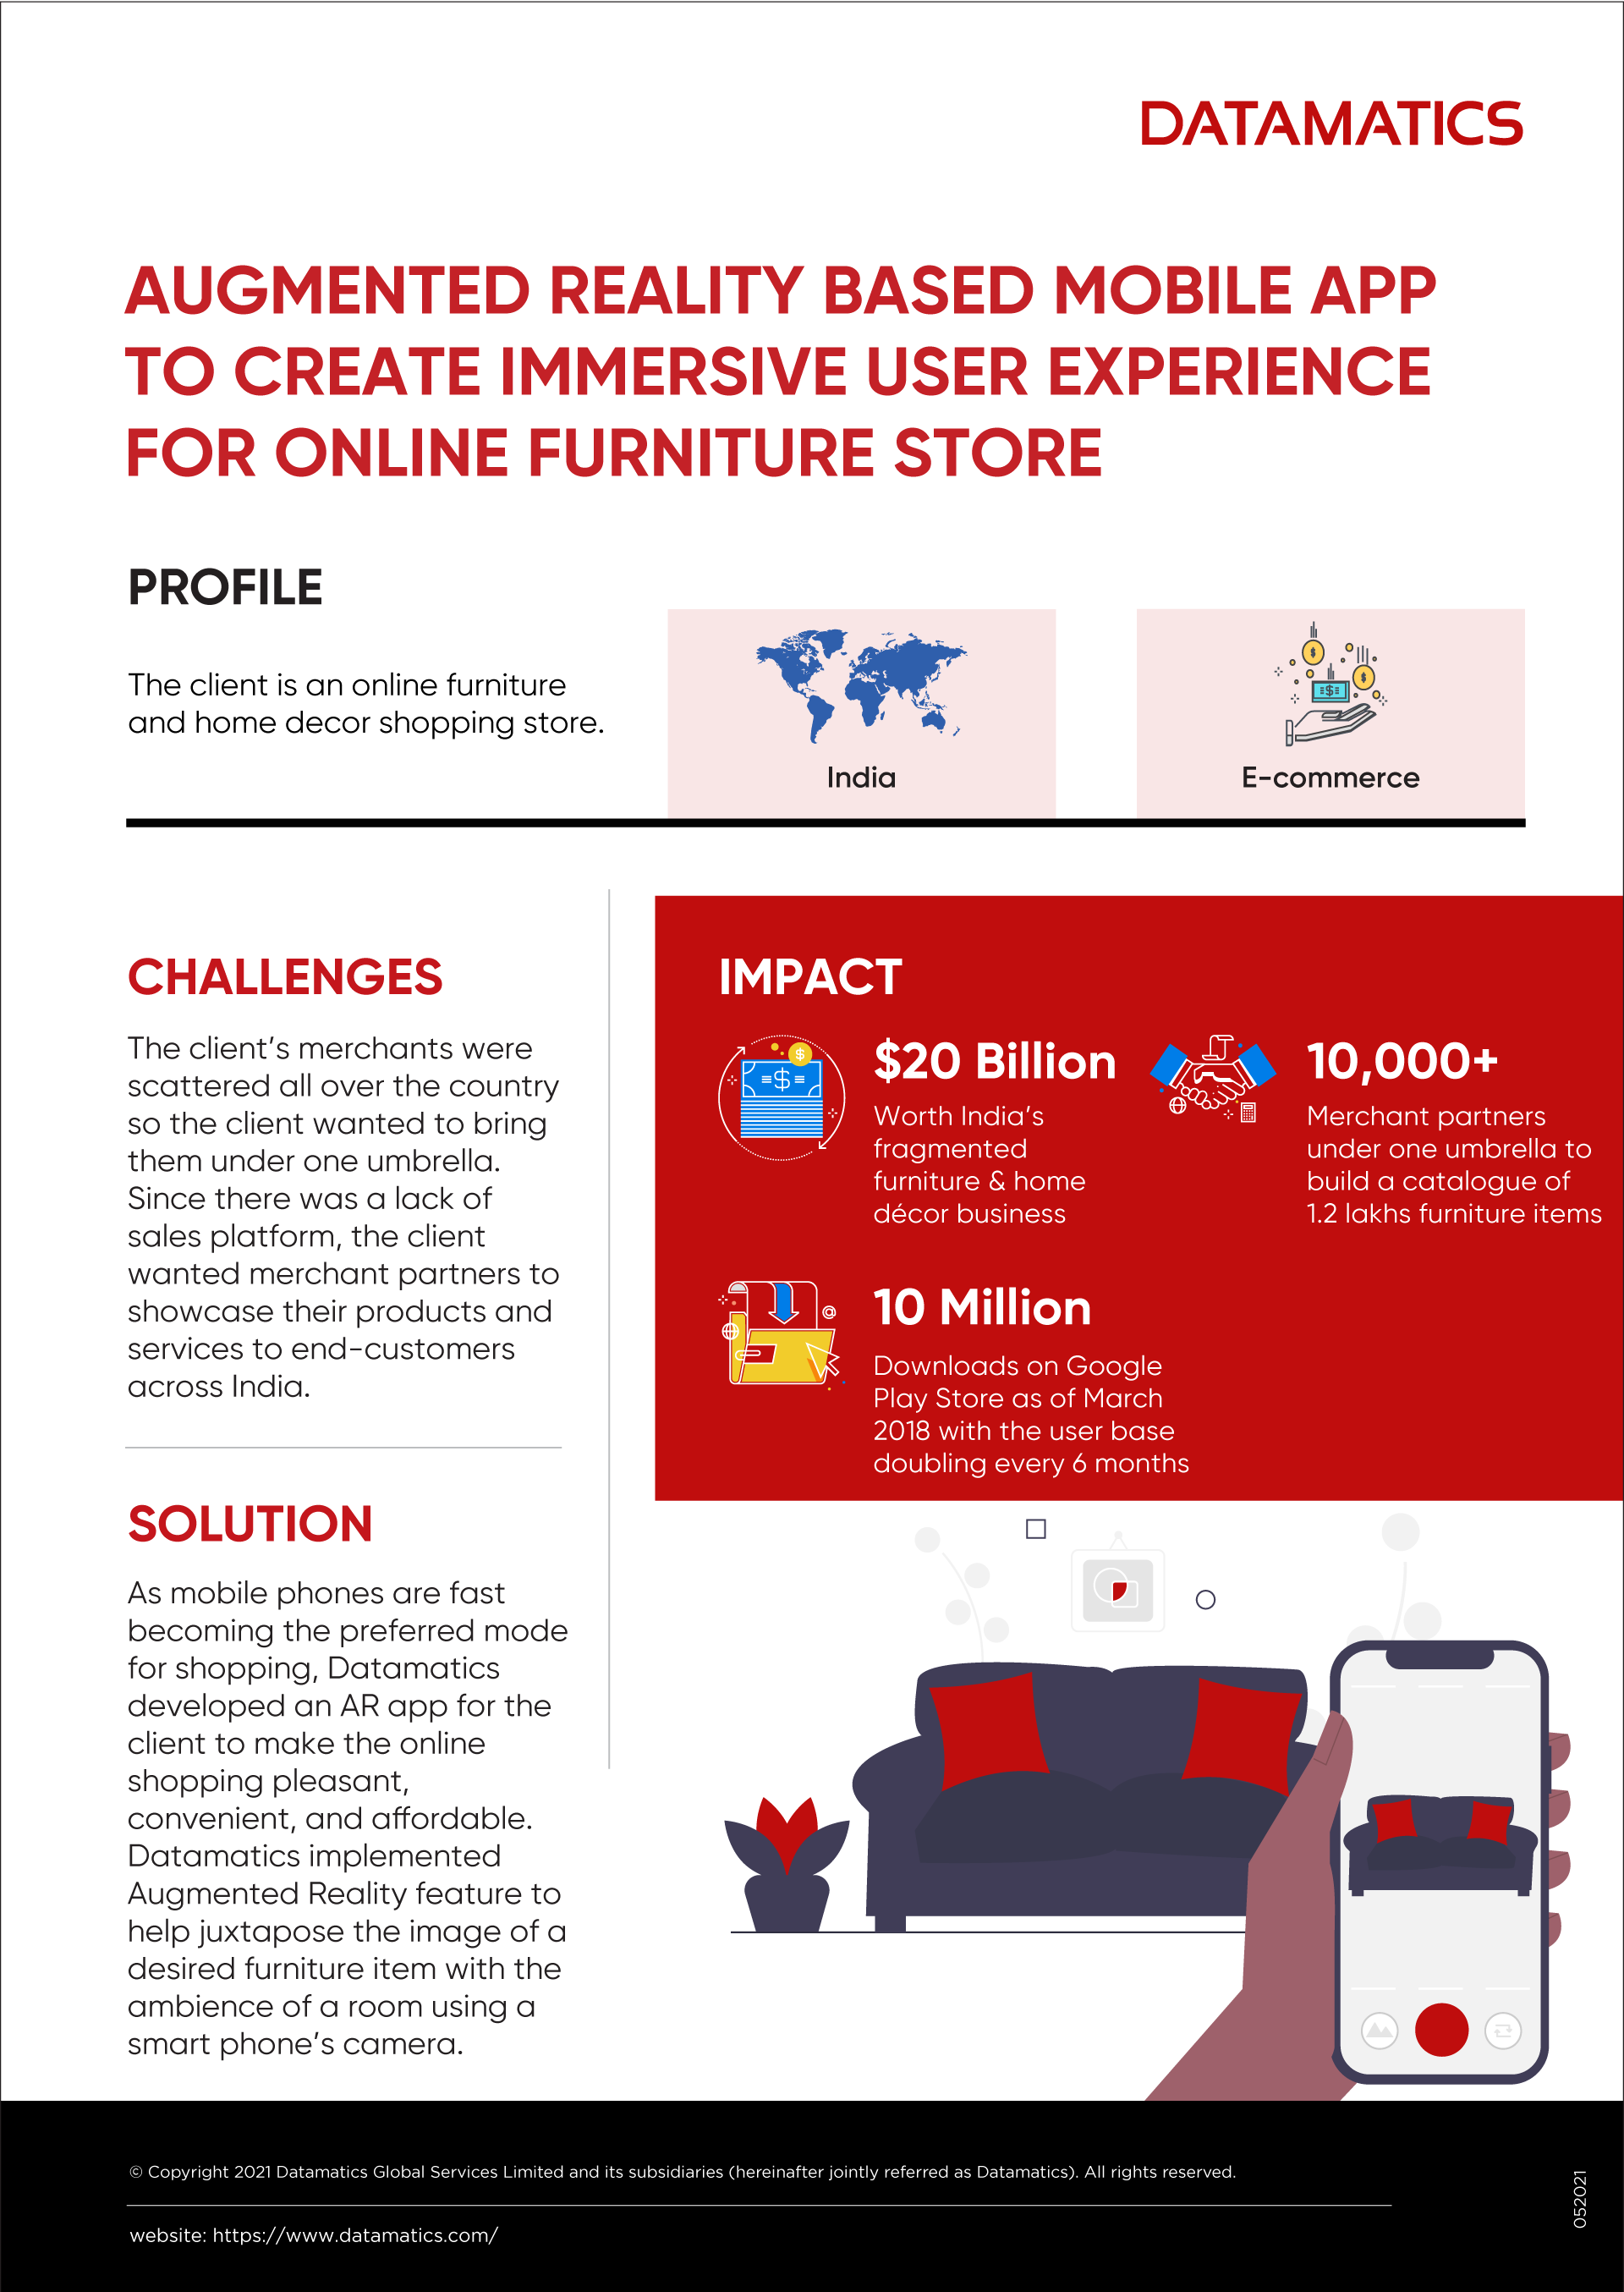 Augmented Reality App for Online Furniture store - Infographic